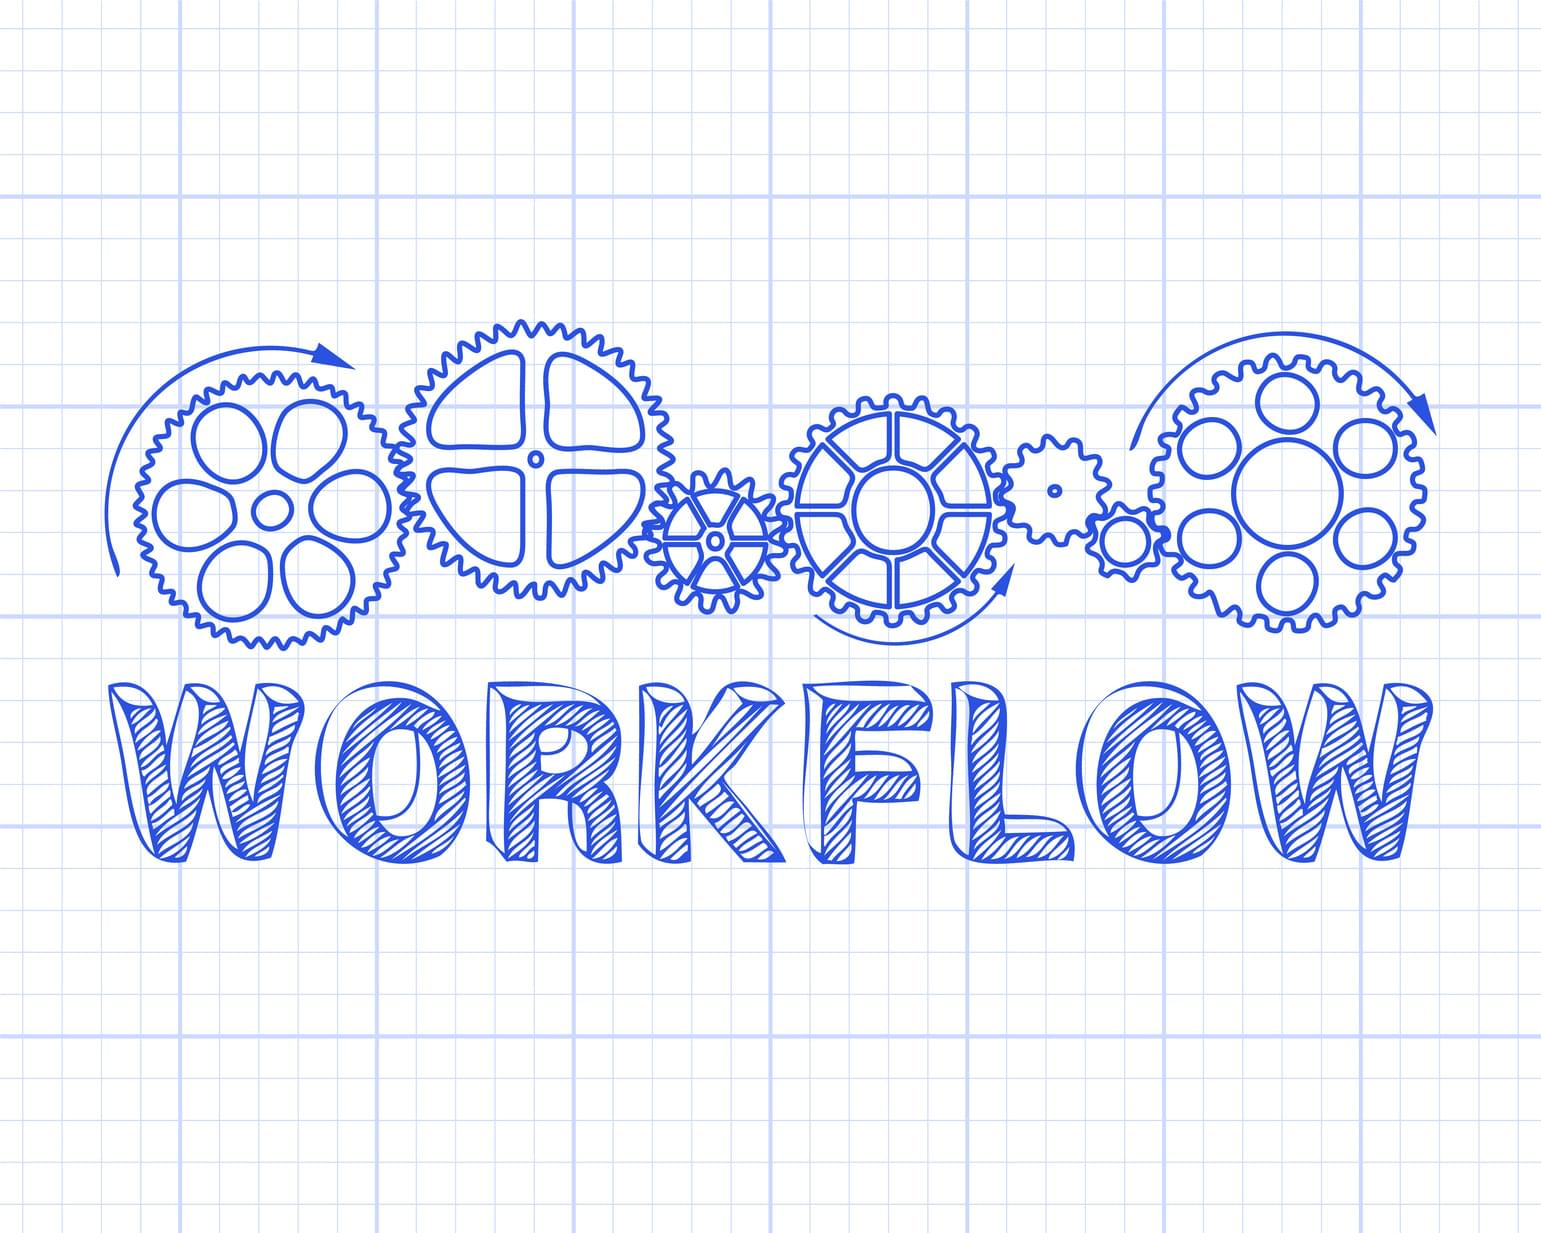 workflow management vs BPM vs RPA